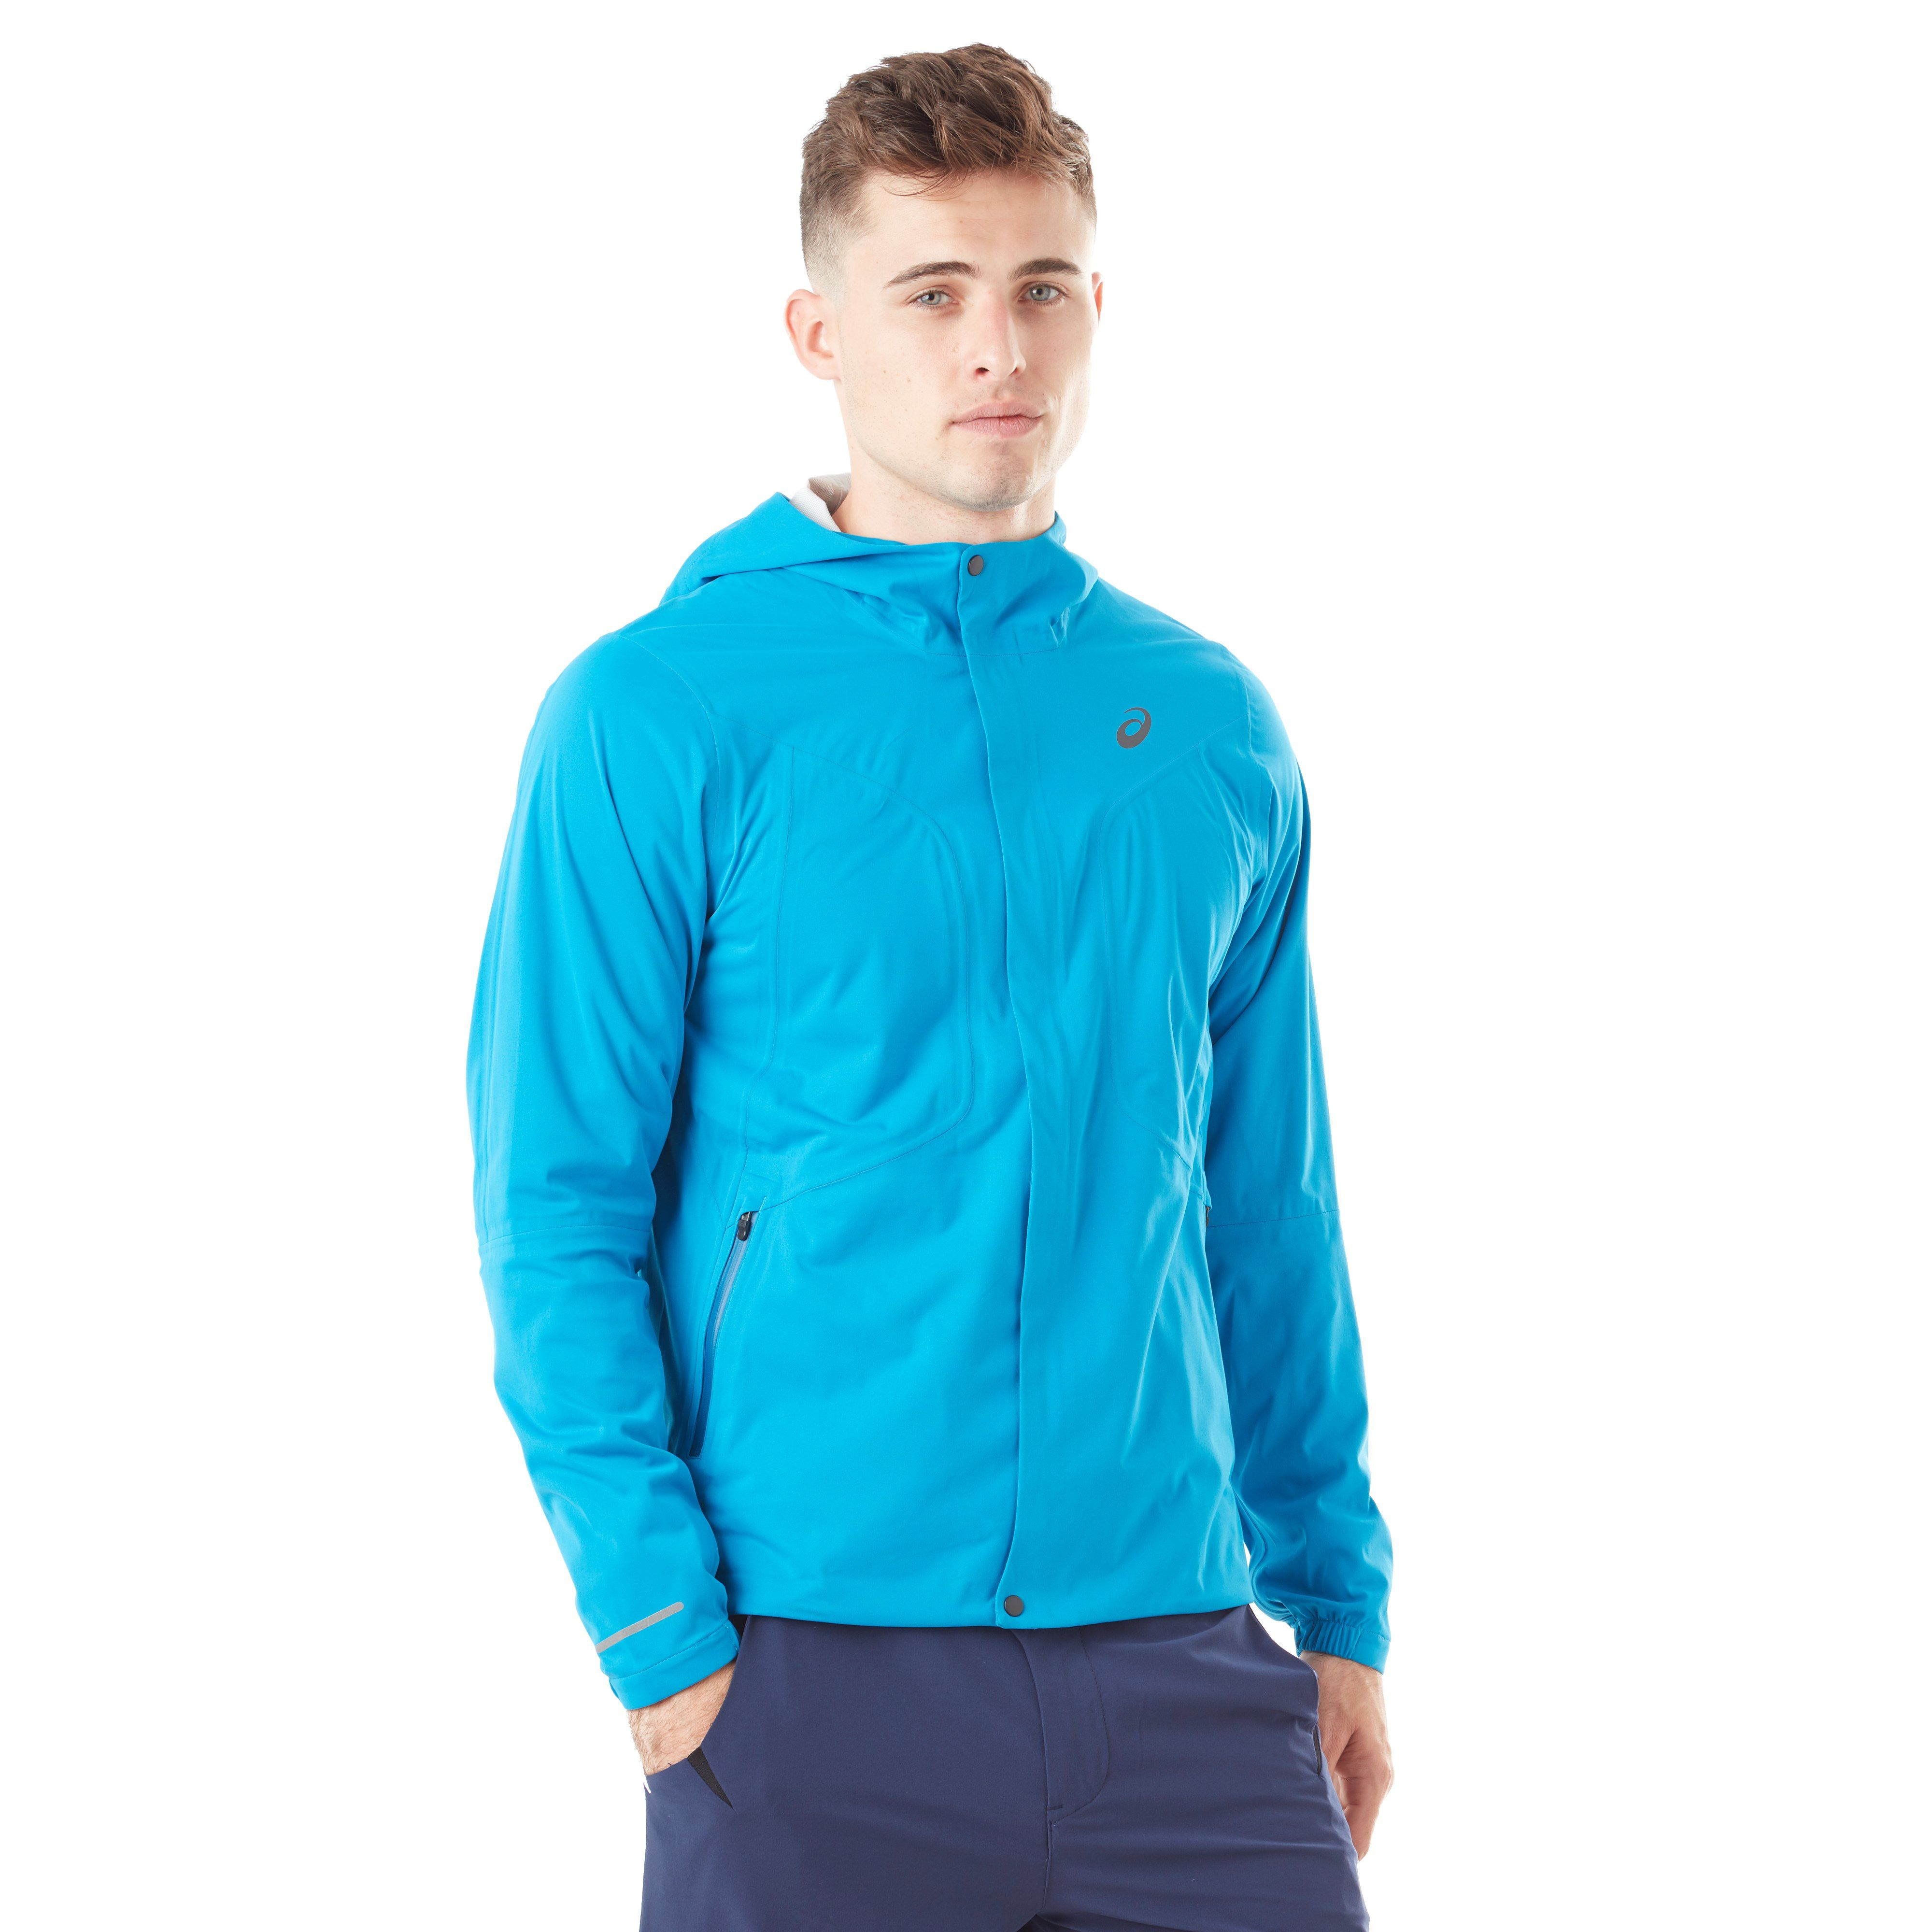 ASICS Accelerate Men's Running Jacket